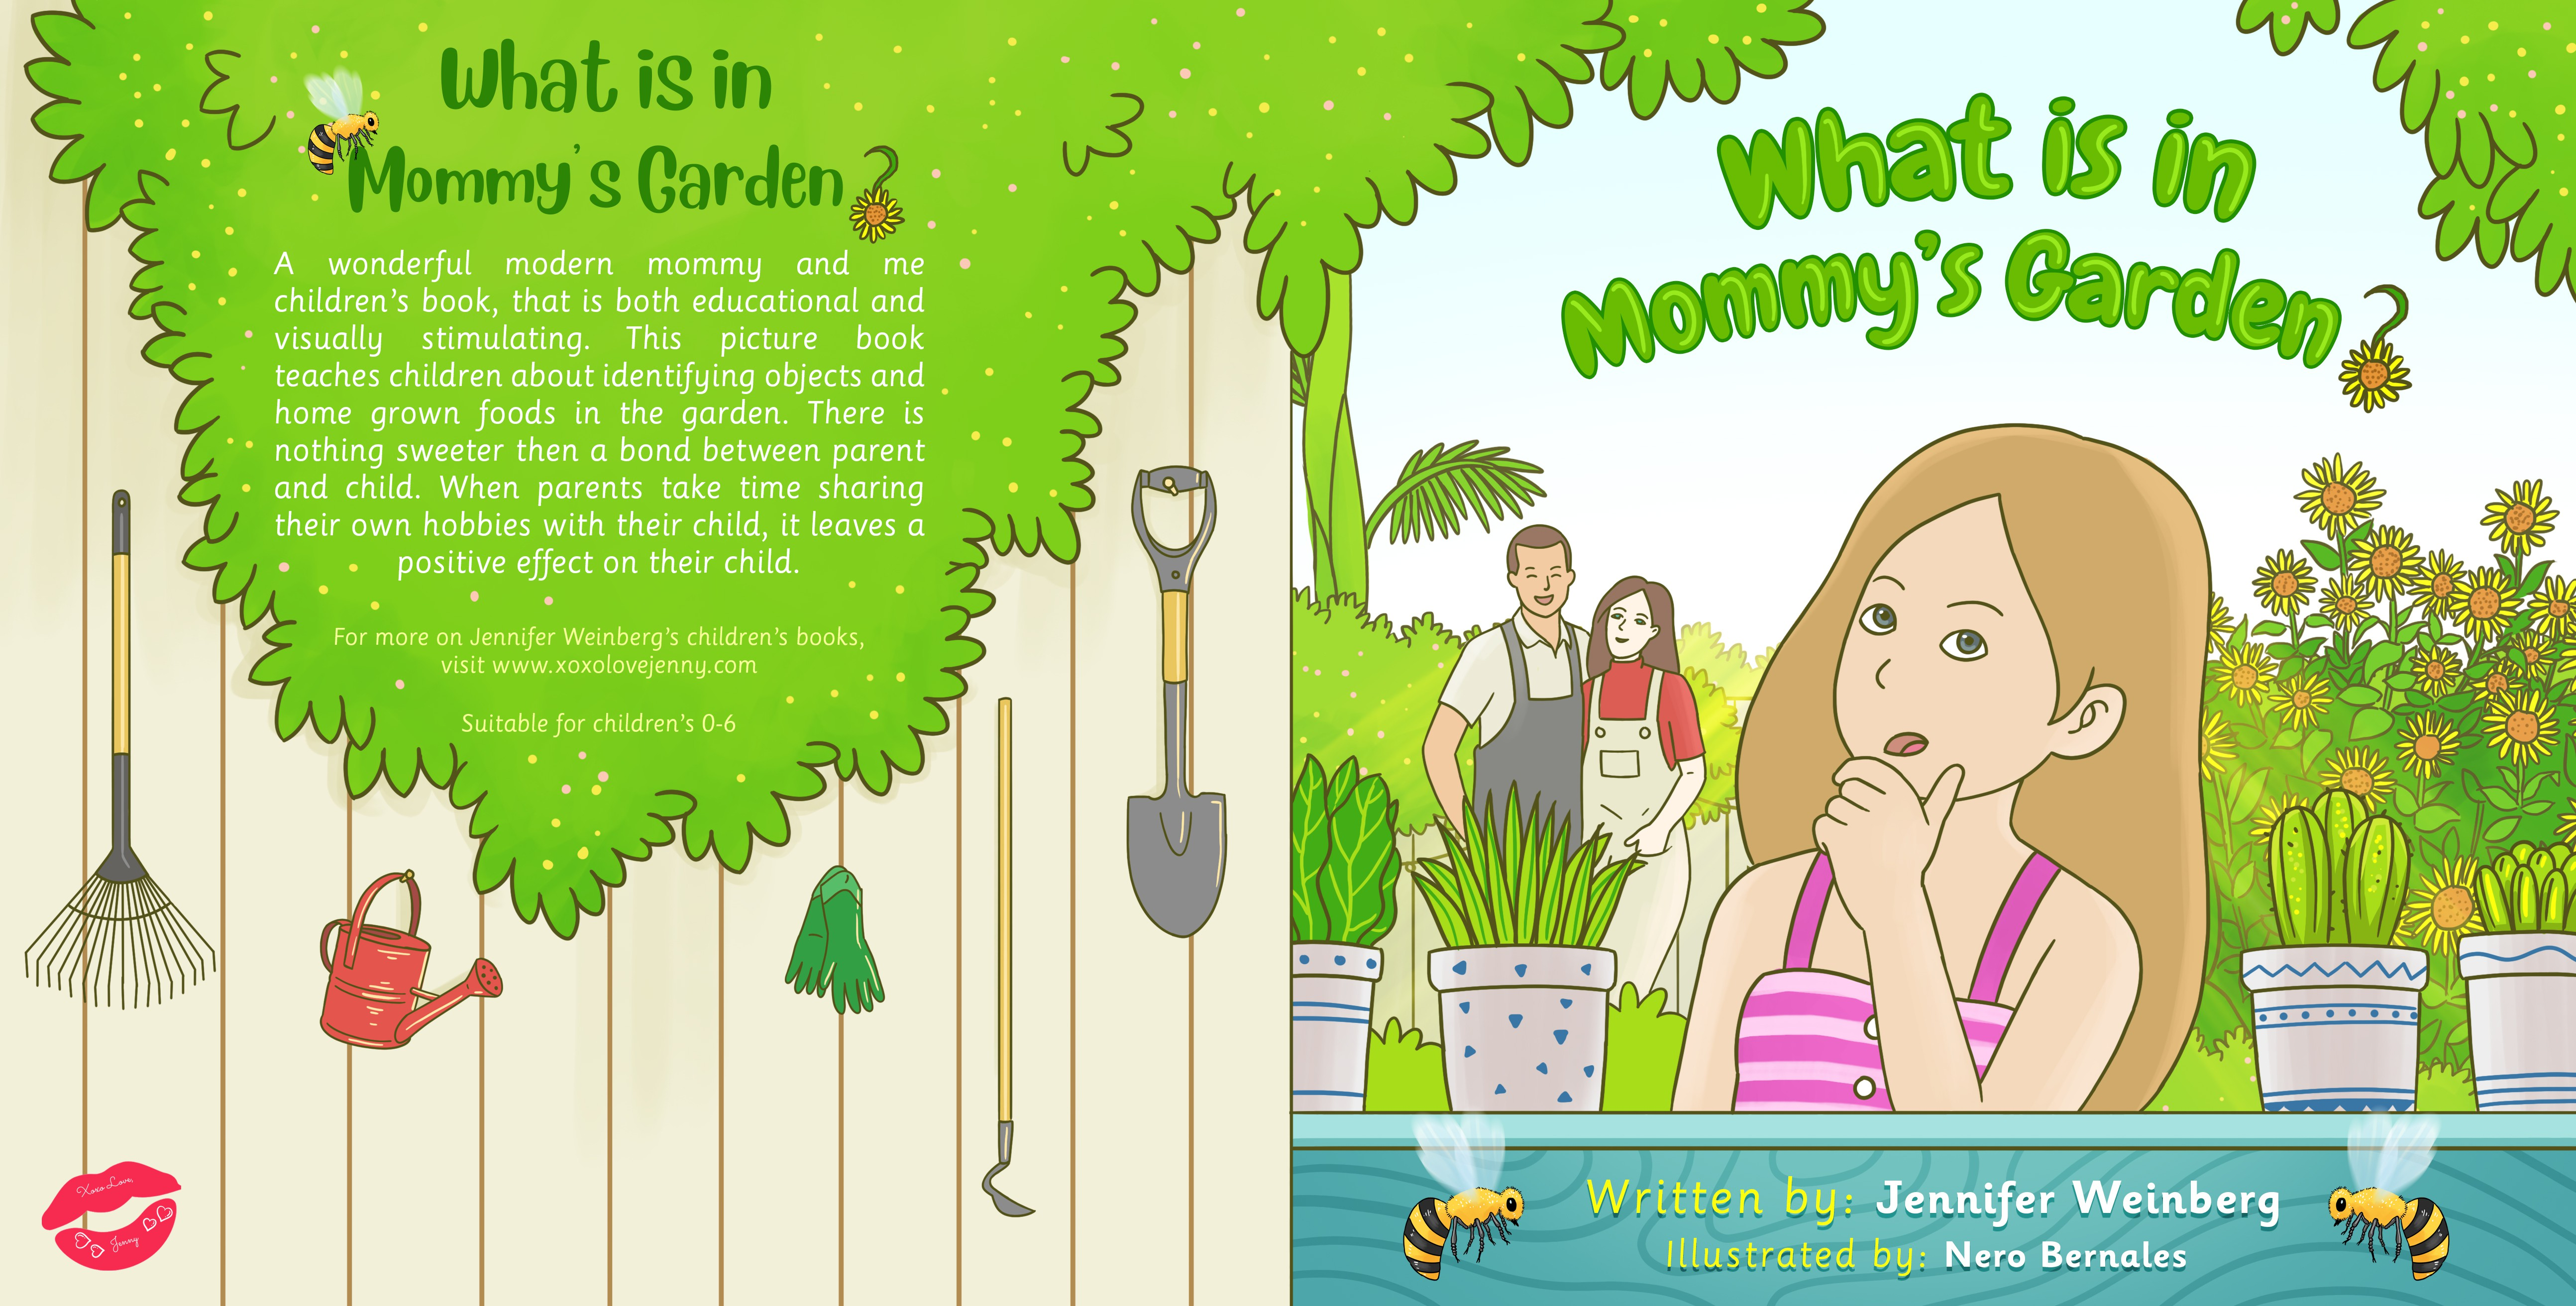 What is in Mommy's Garden?